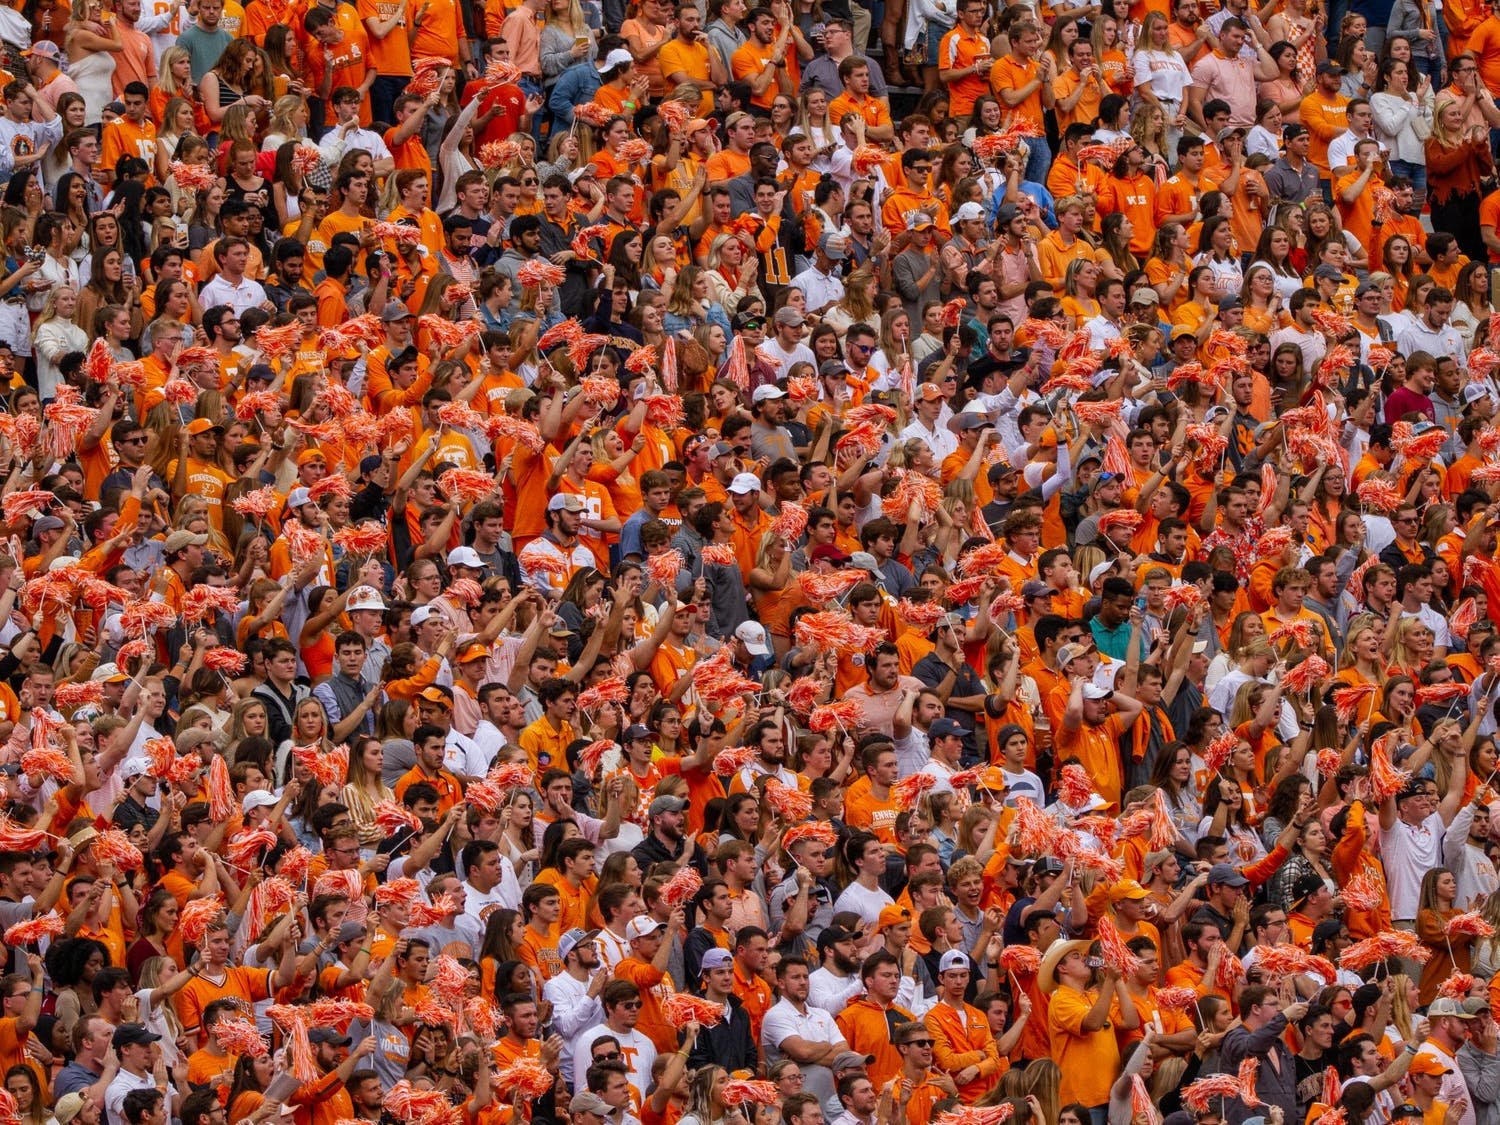 Fans in the student section cheer on the Vols at Neyland Stadium during their game against South Carolina on October 26, 2019.